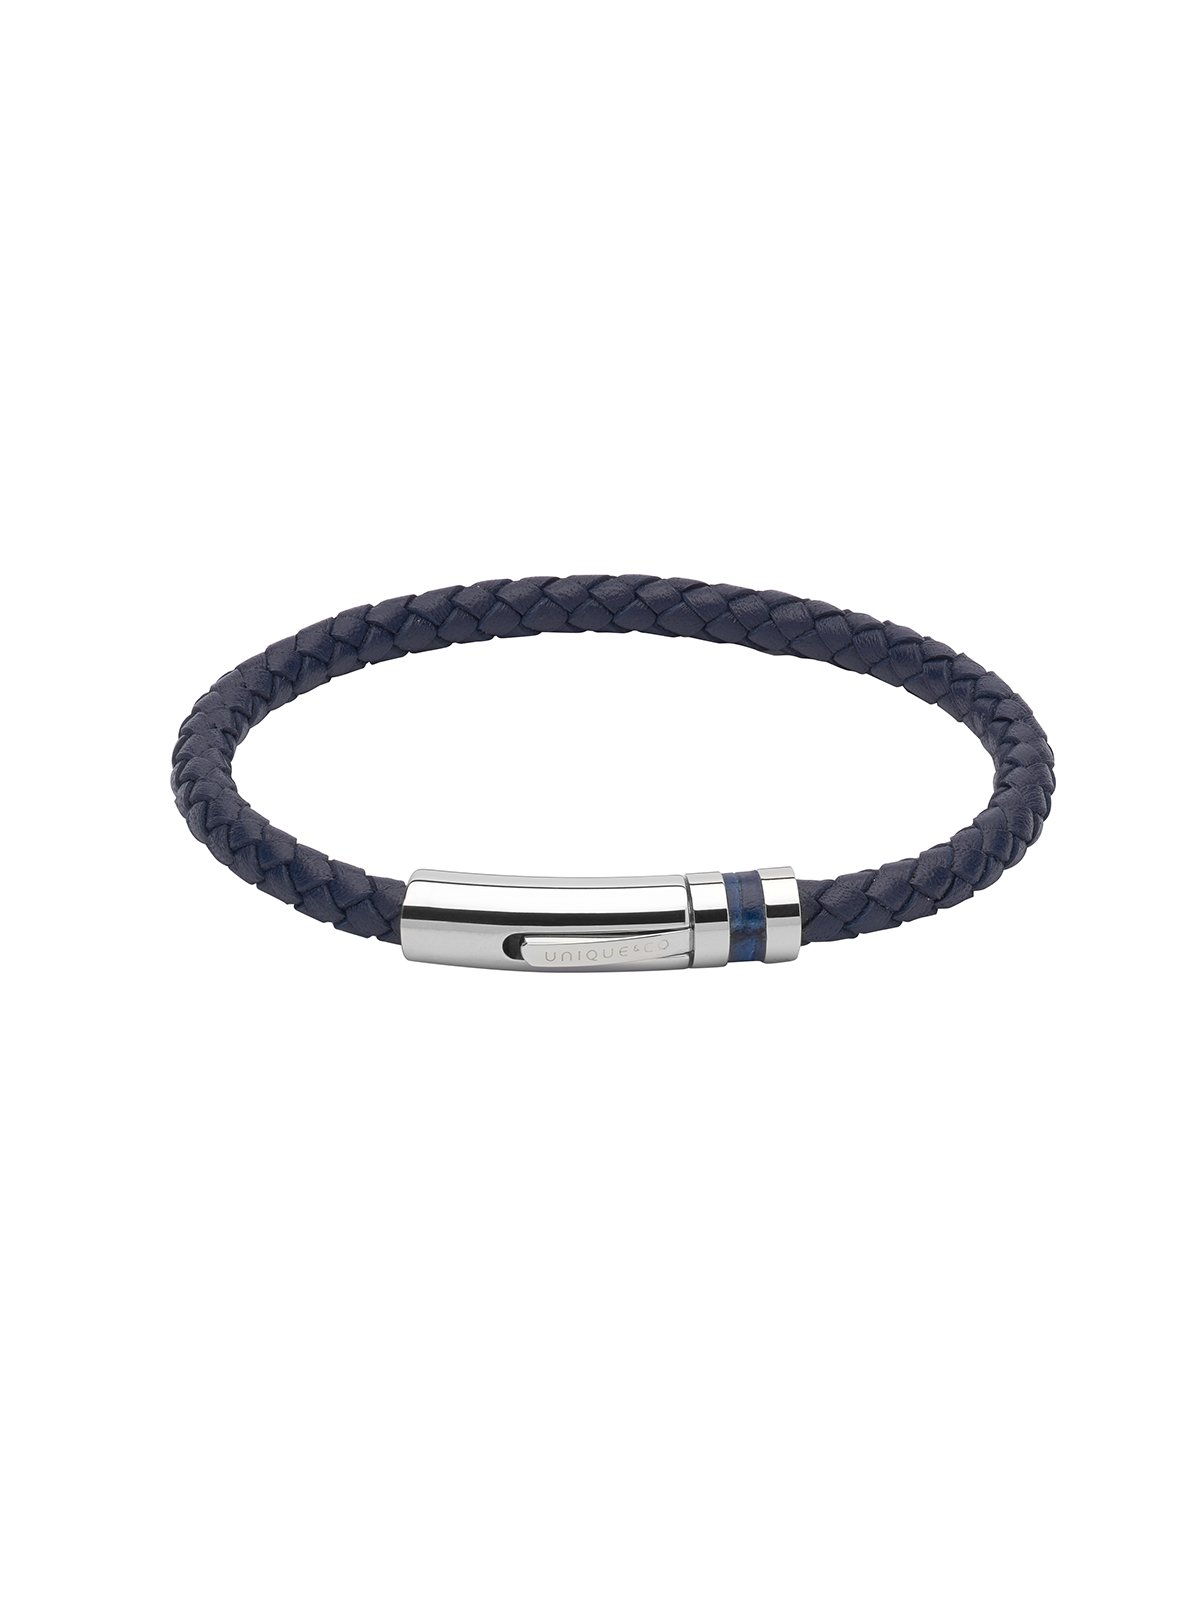 Unique & Co. 21cm Navy Blue Leather Bracelet B346NV/21CM